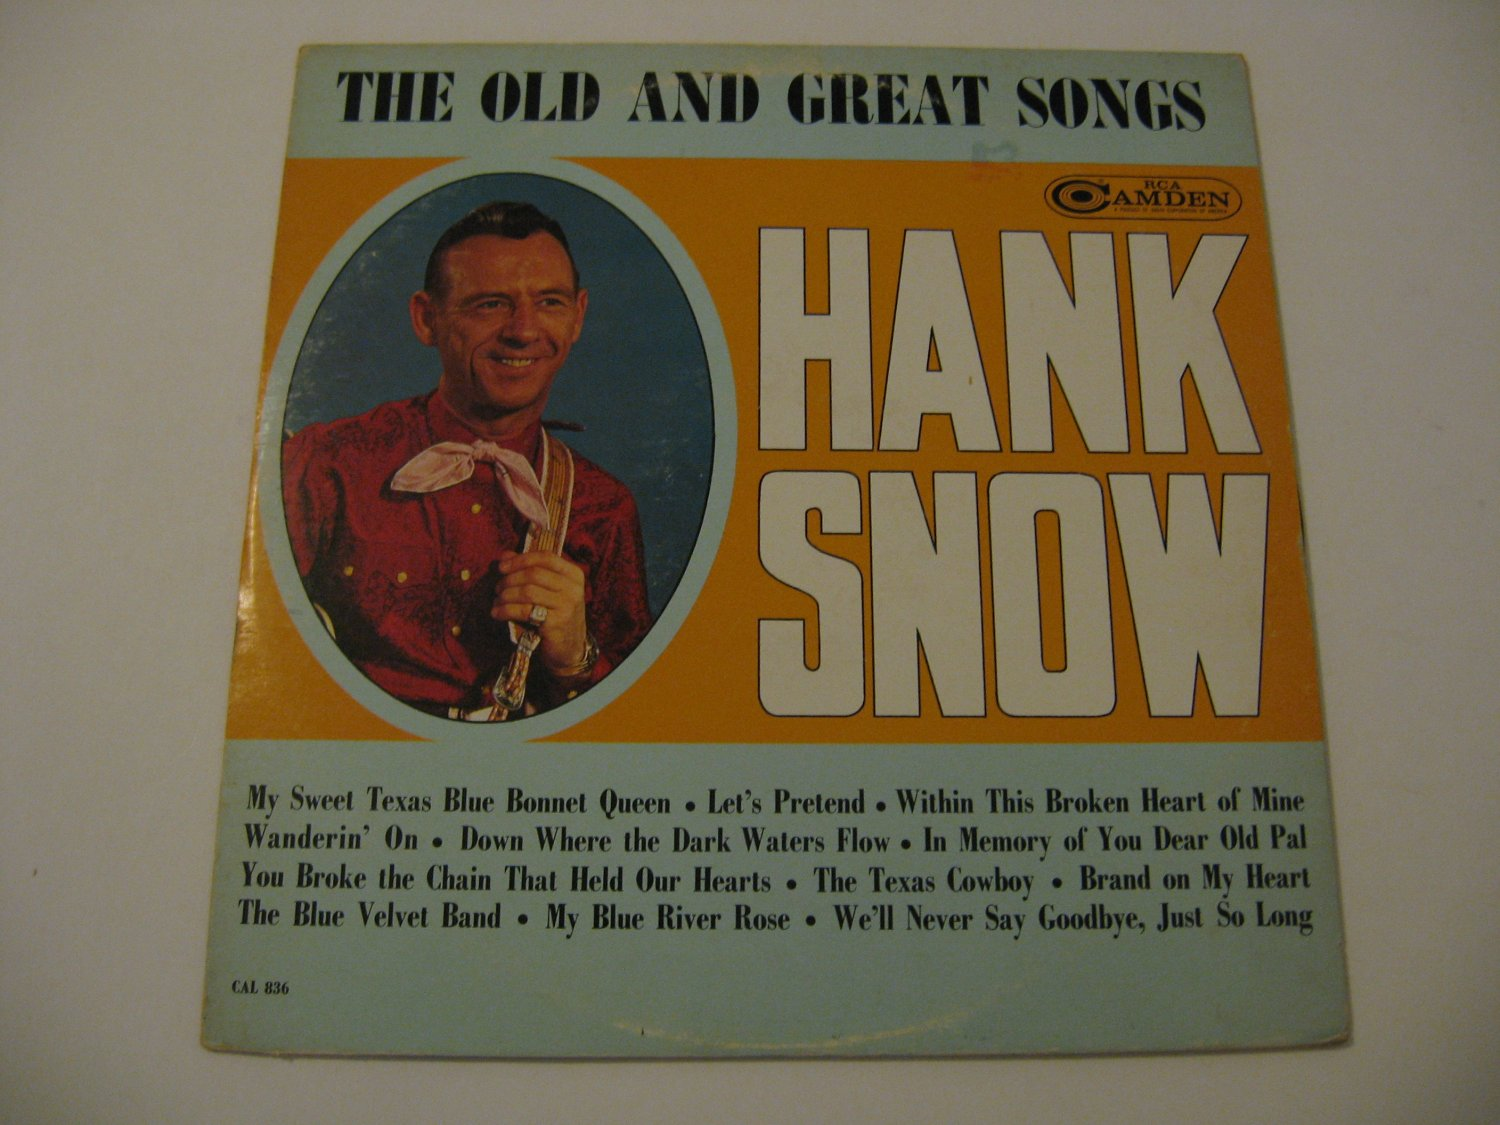 Hank Snow - The Old And Great Songs - Circa 1964